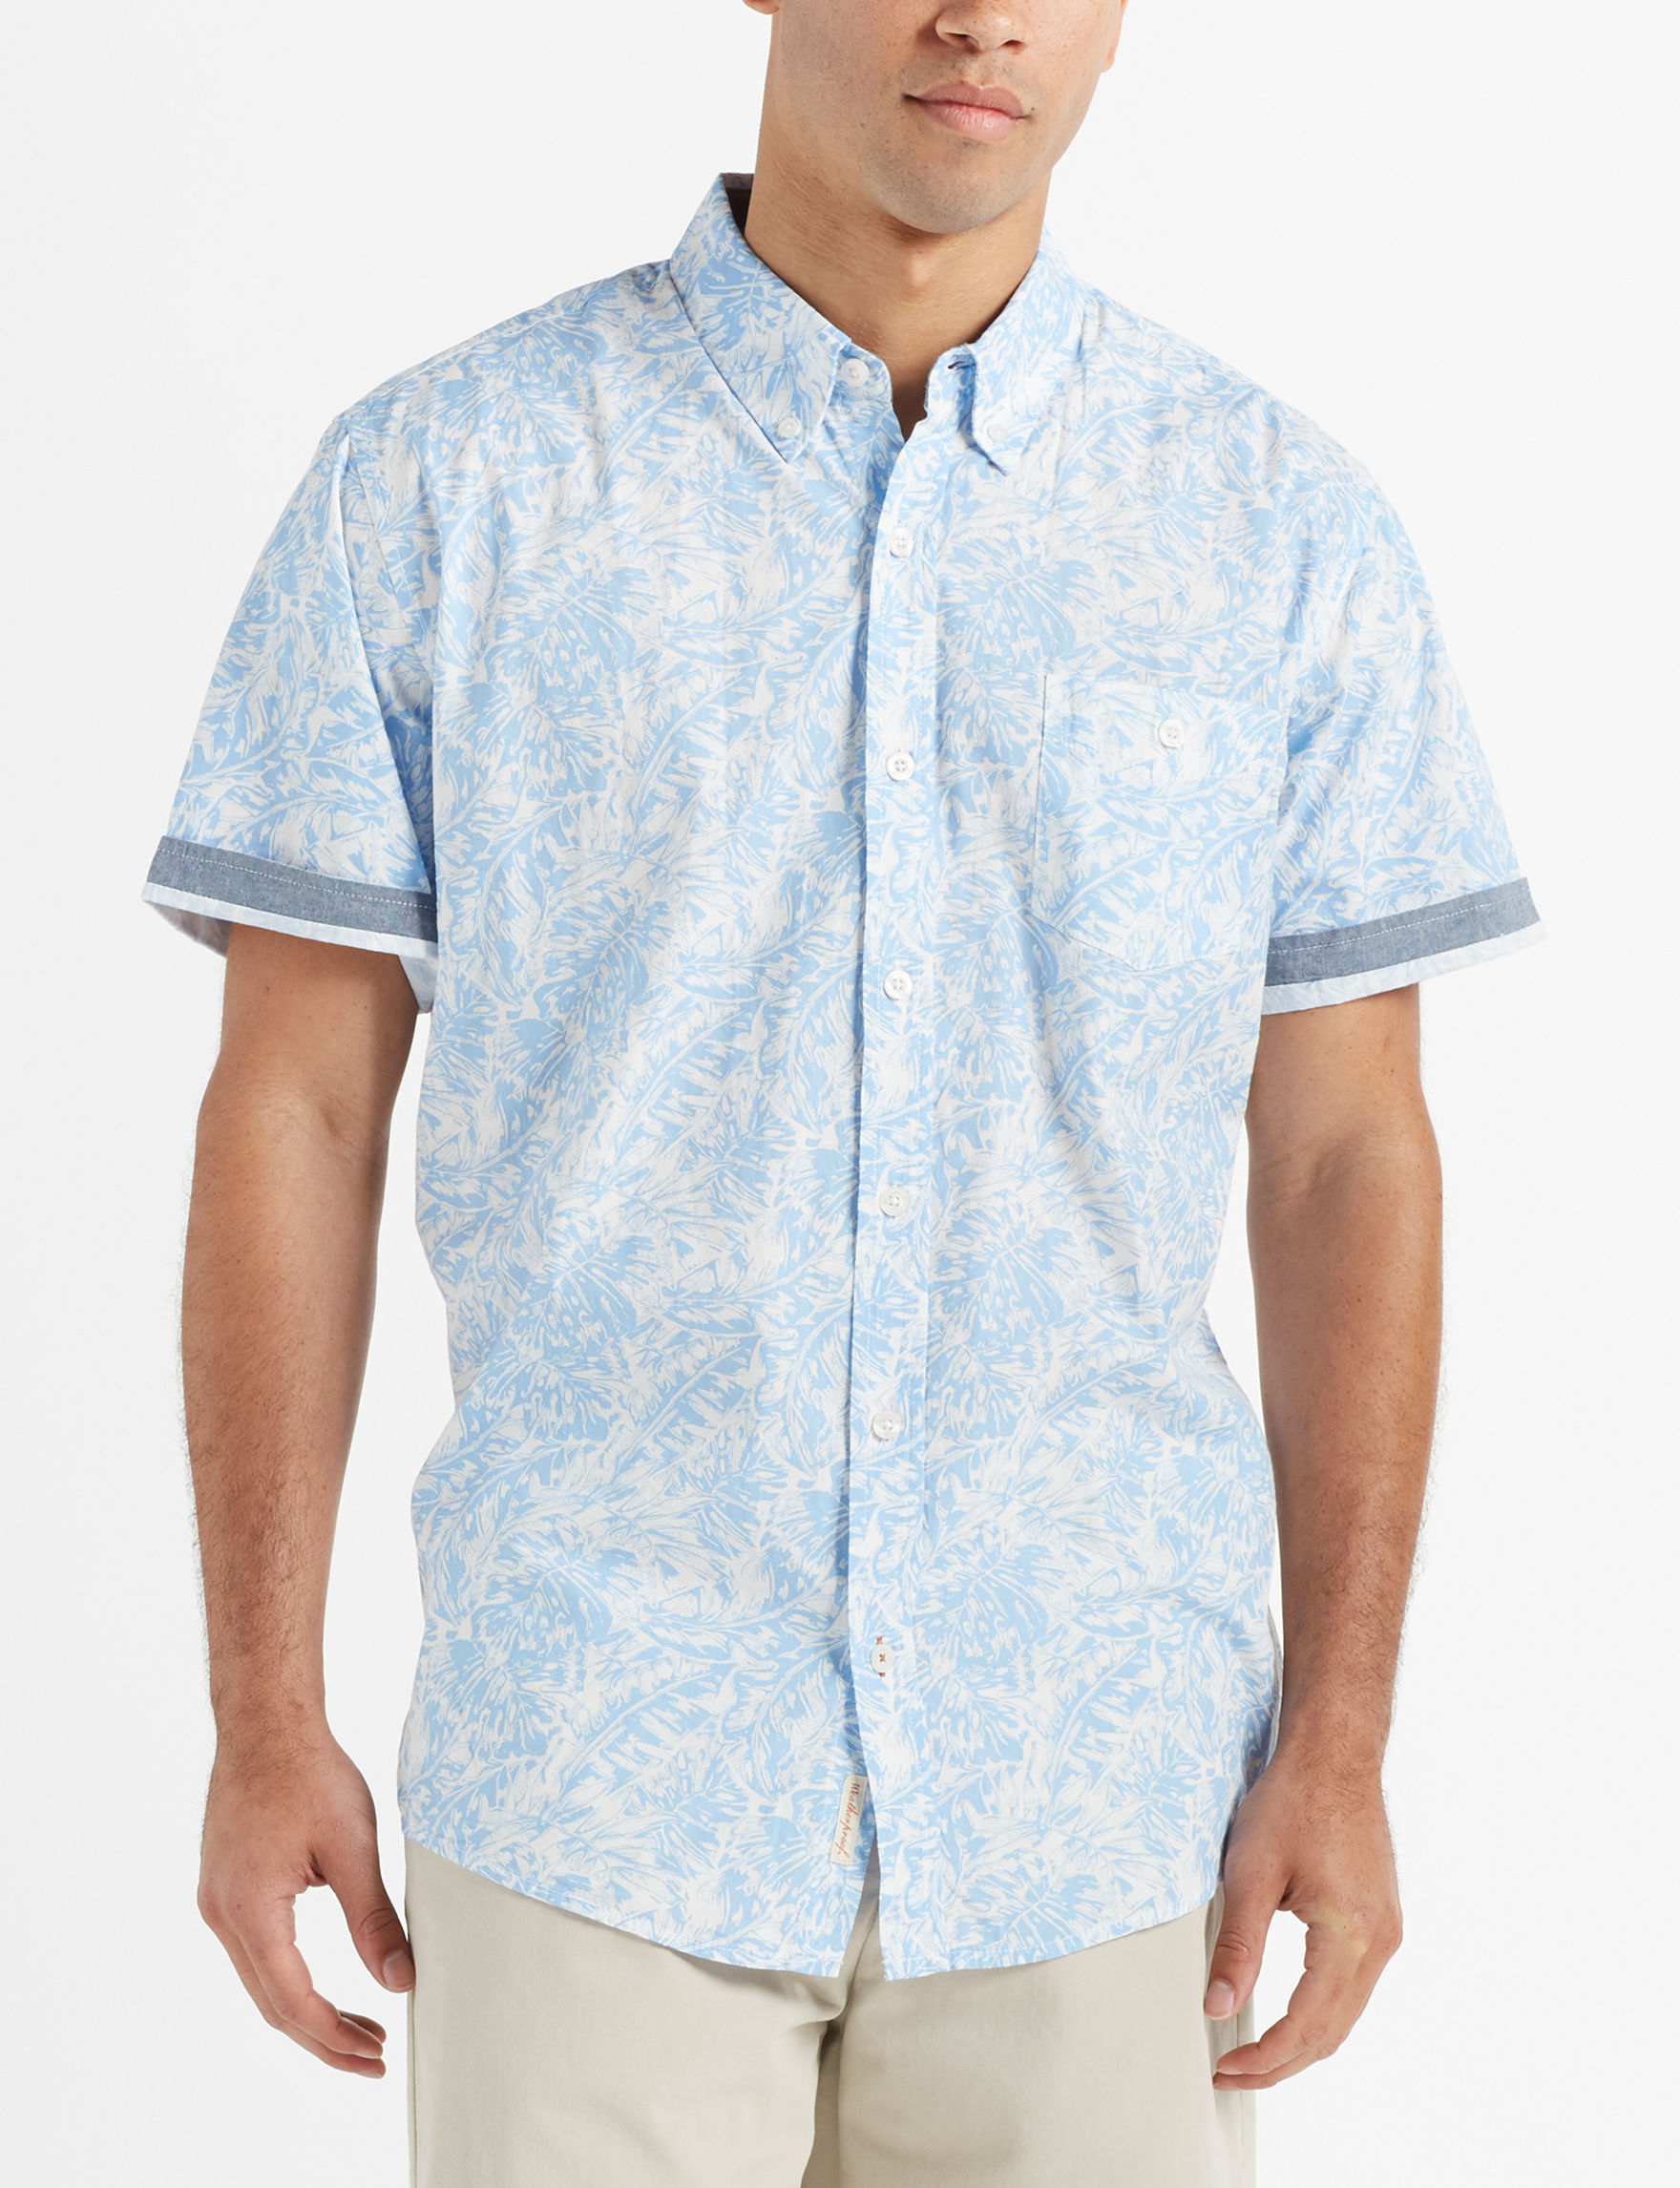 Weatherproof White / Blue Casual Button Down Shirts